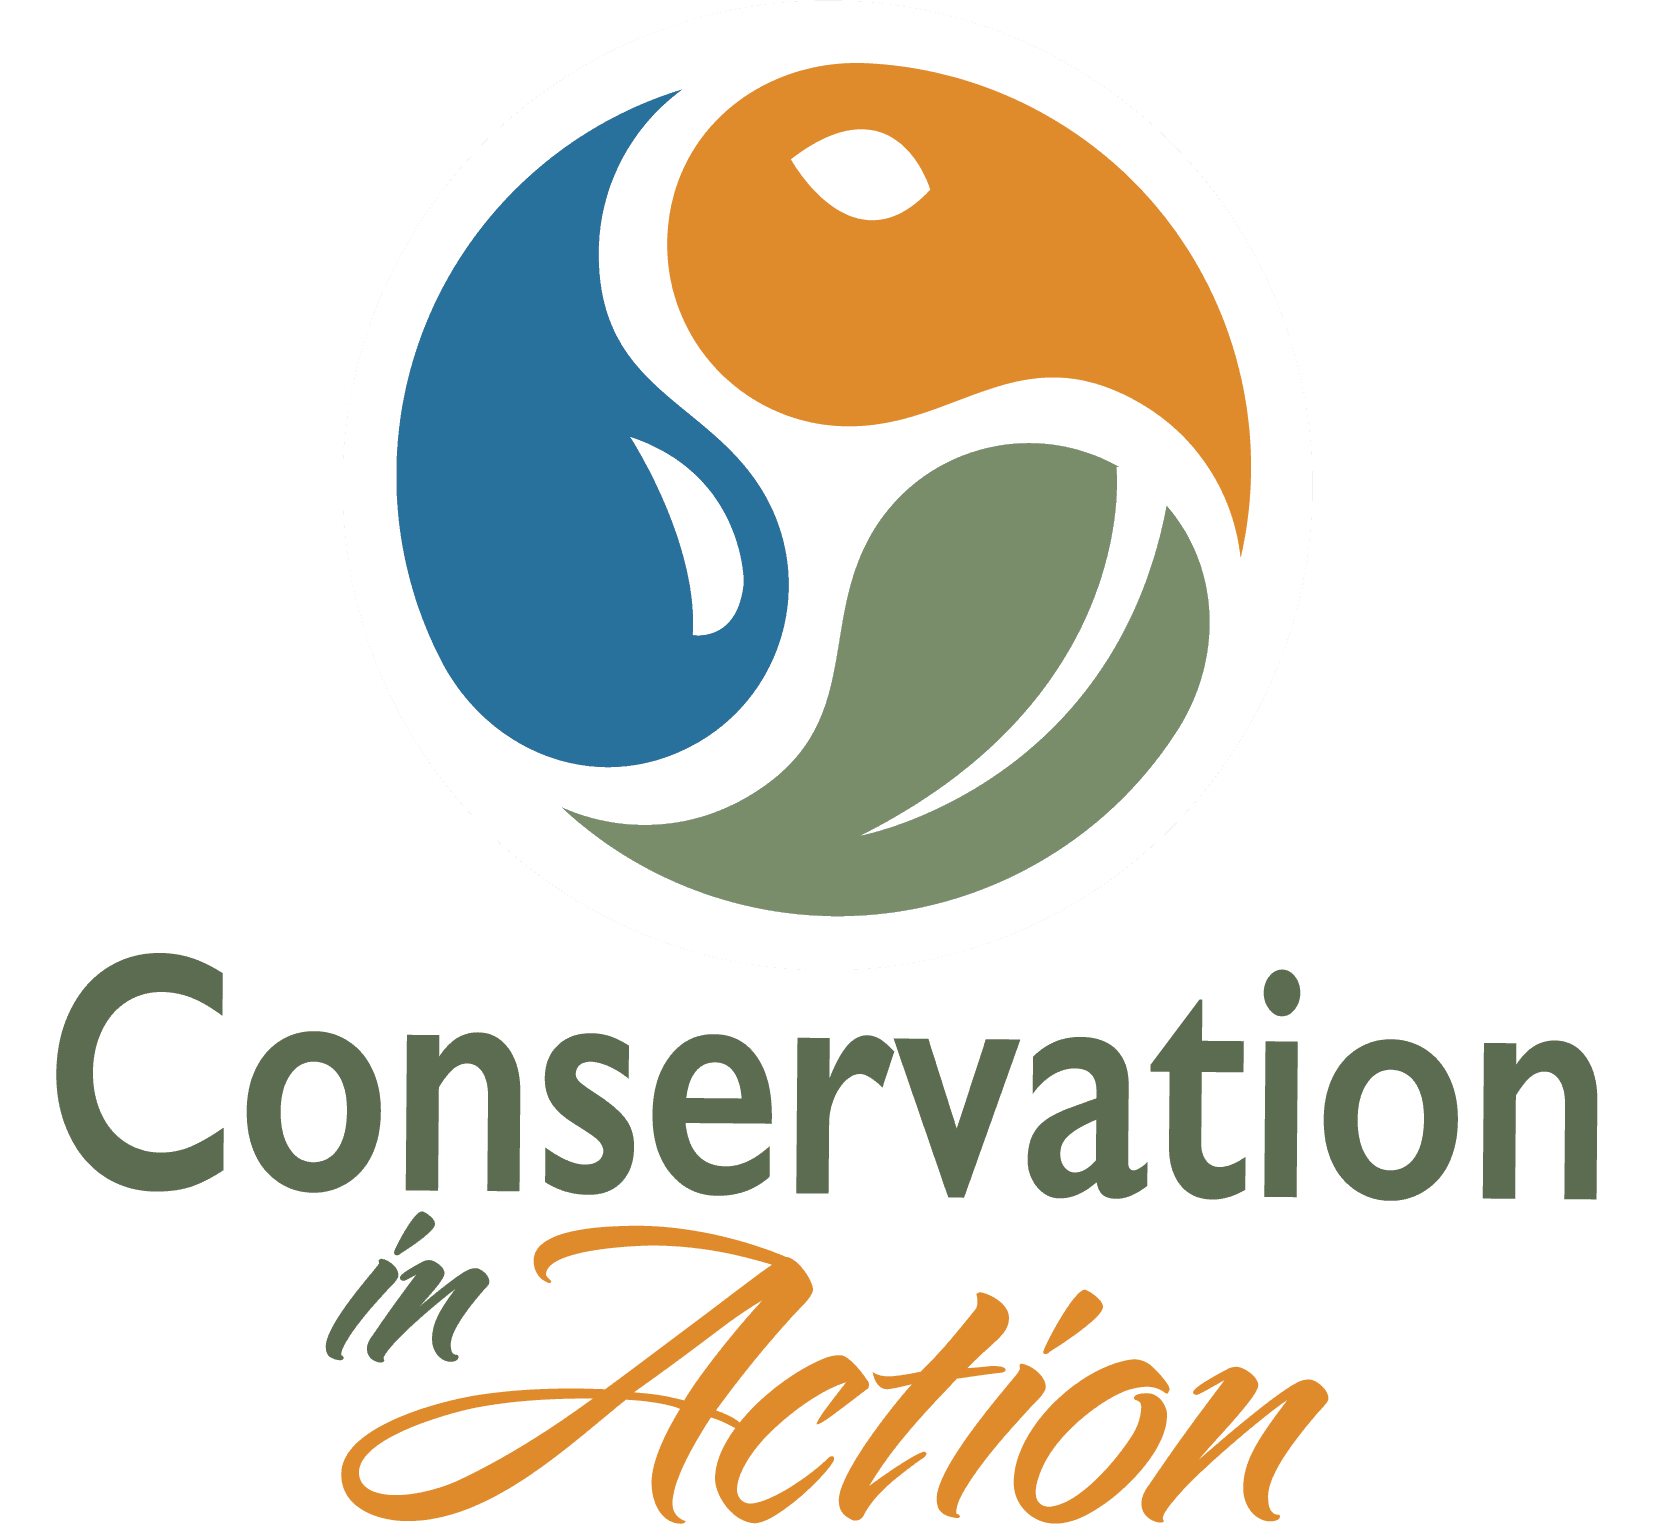 Conservation in Action logo: Leaf, water drop, critter in circle, with text